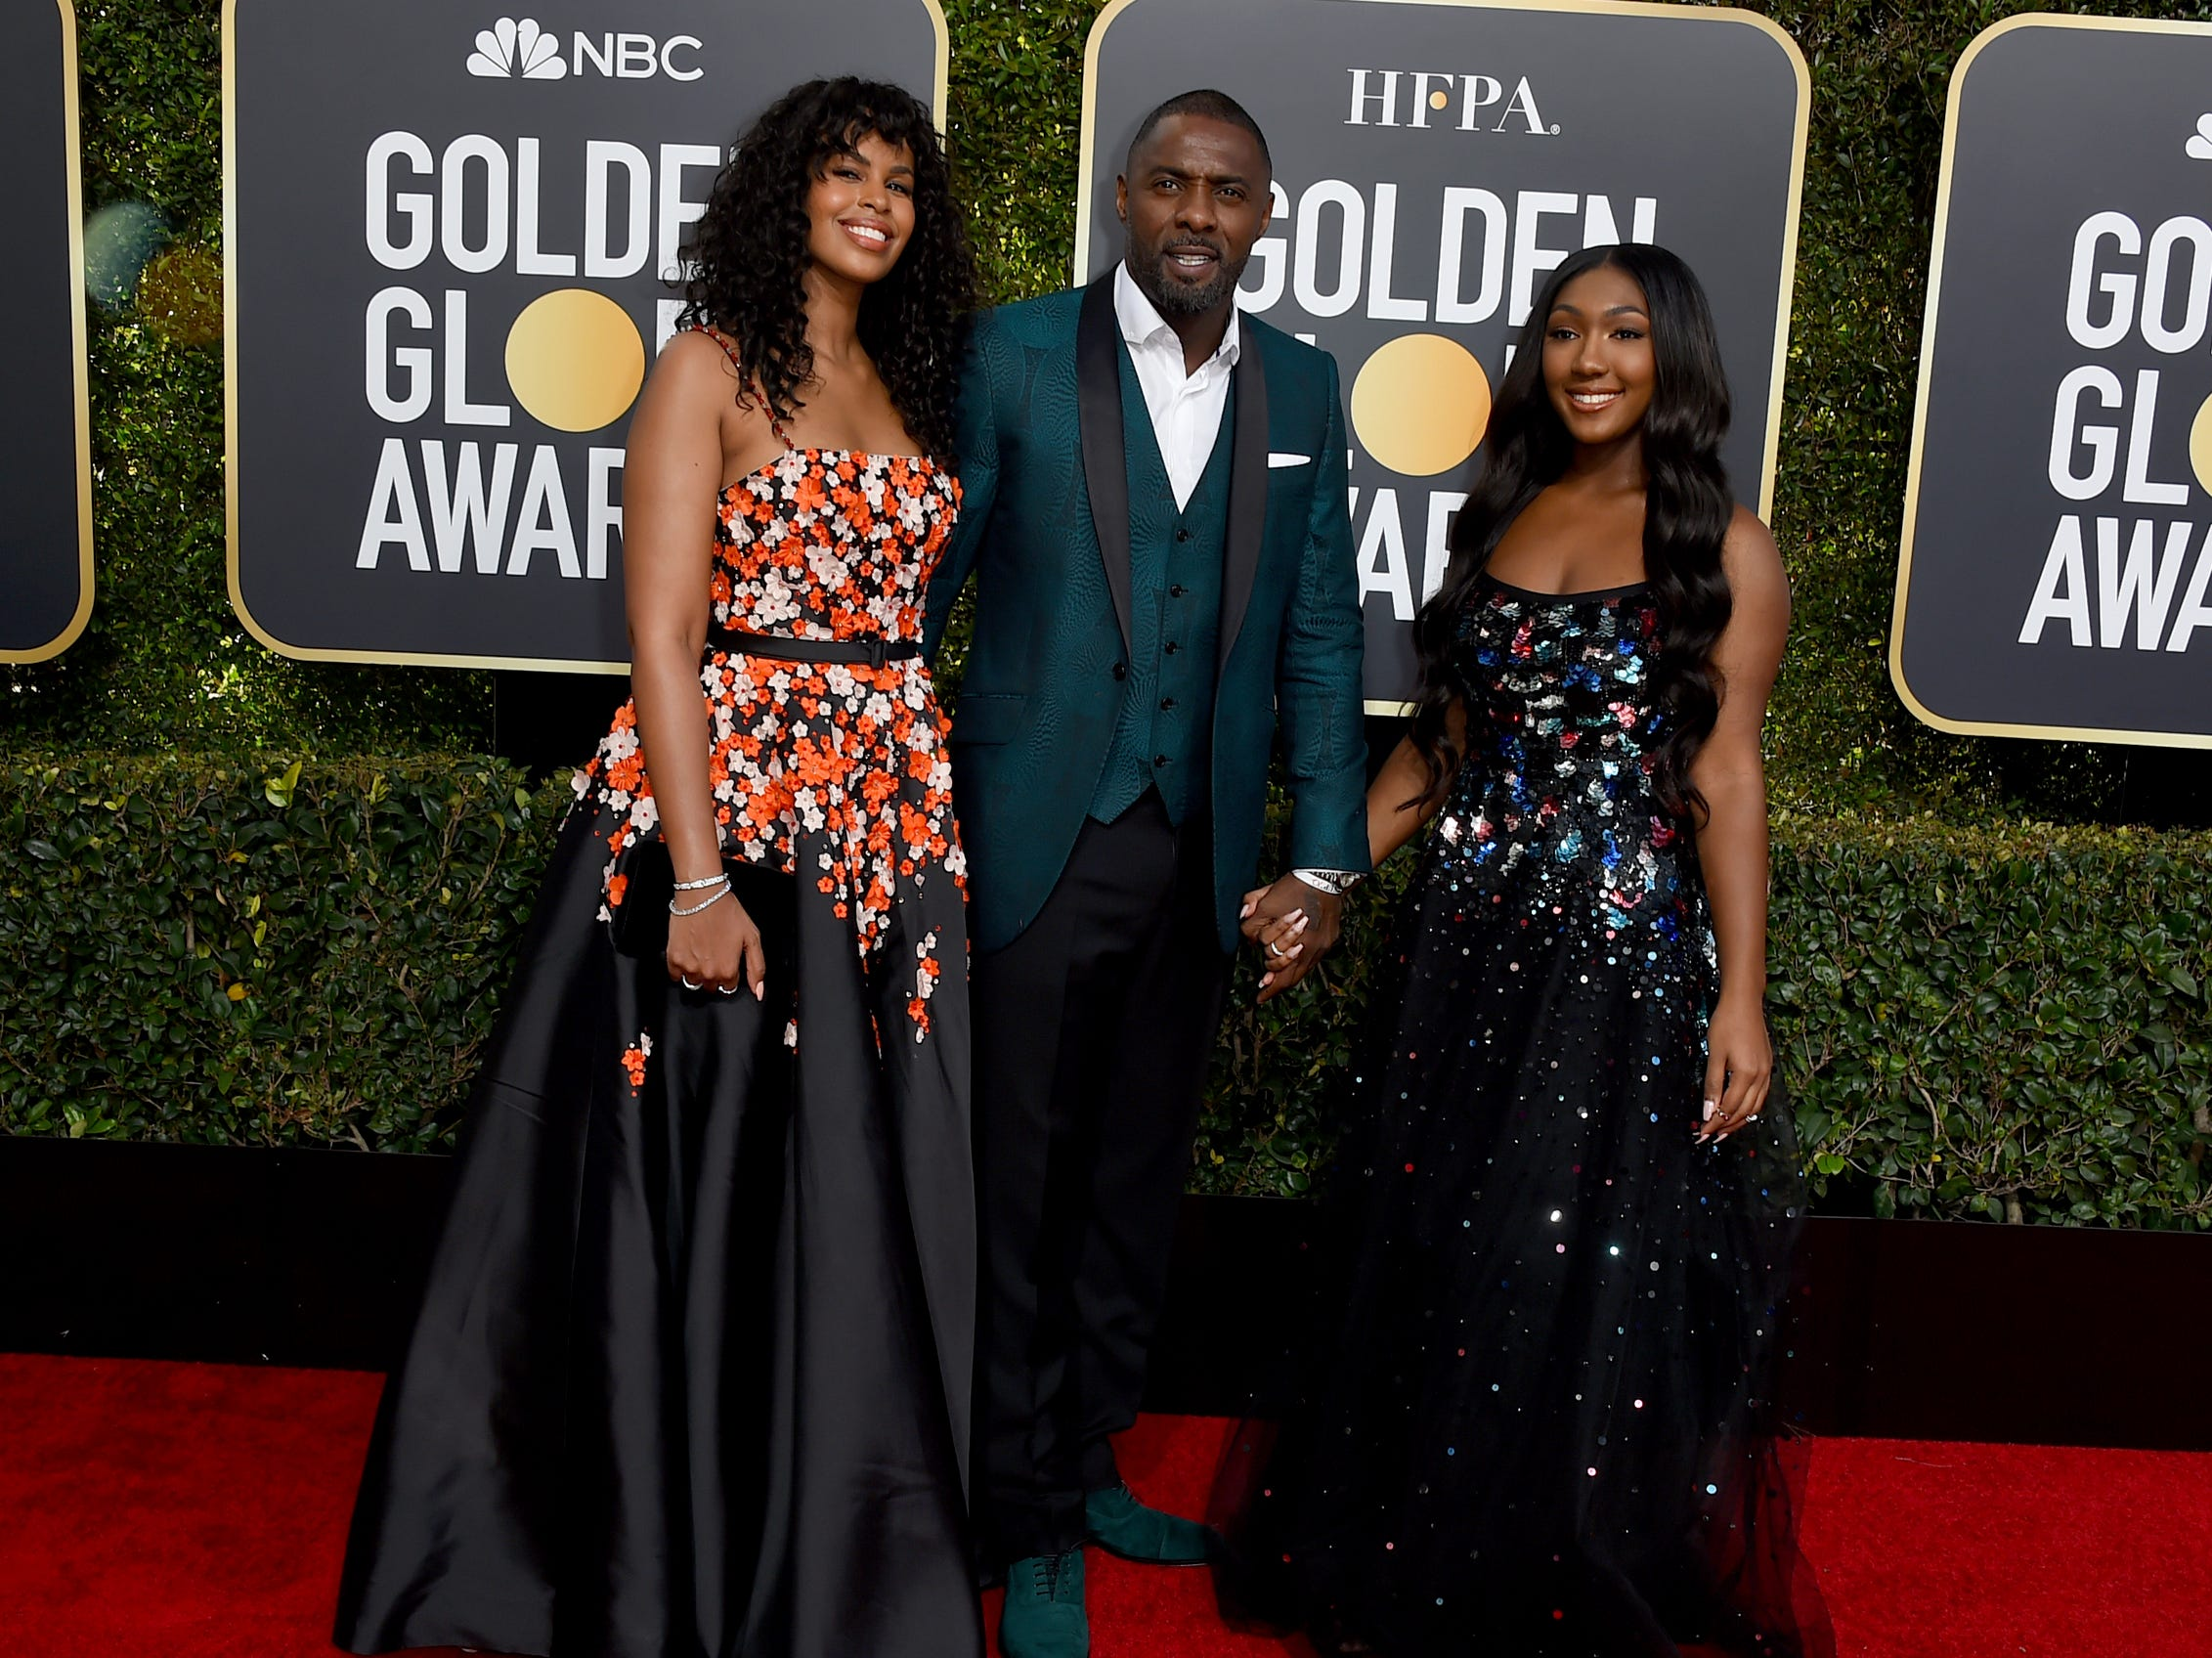 Idris Elba, center, his daughter Isan Elba, right, and Sabrina Dhowre arrive at the 76th annual Golden Globe Awards at the Beverly Hilton Hotel on Sunday, Jan. 6, 2019, in Beverly Hills, Calif.